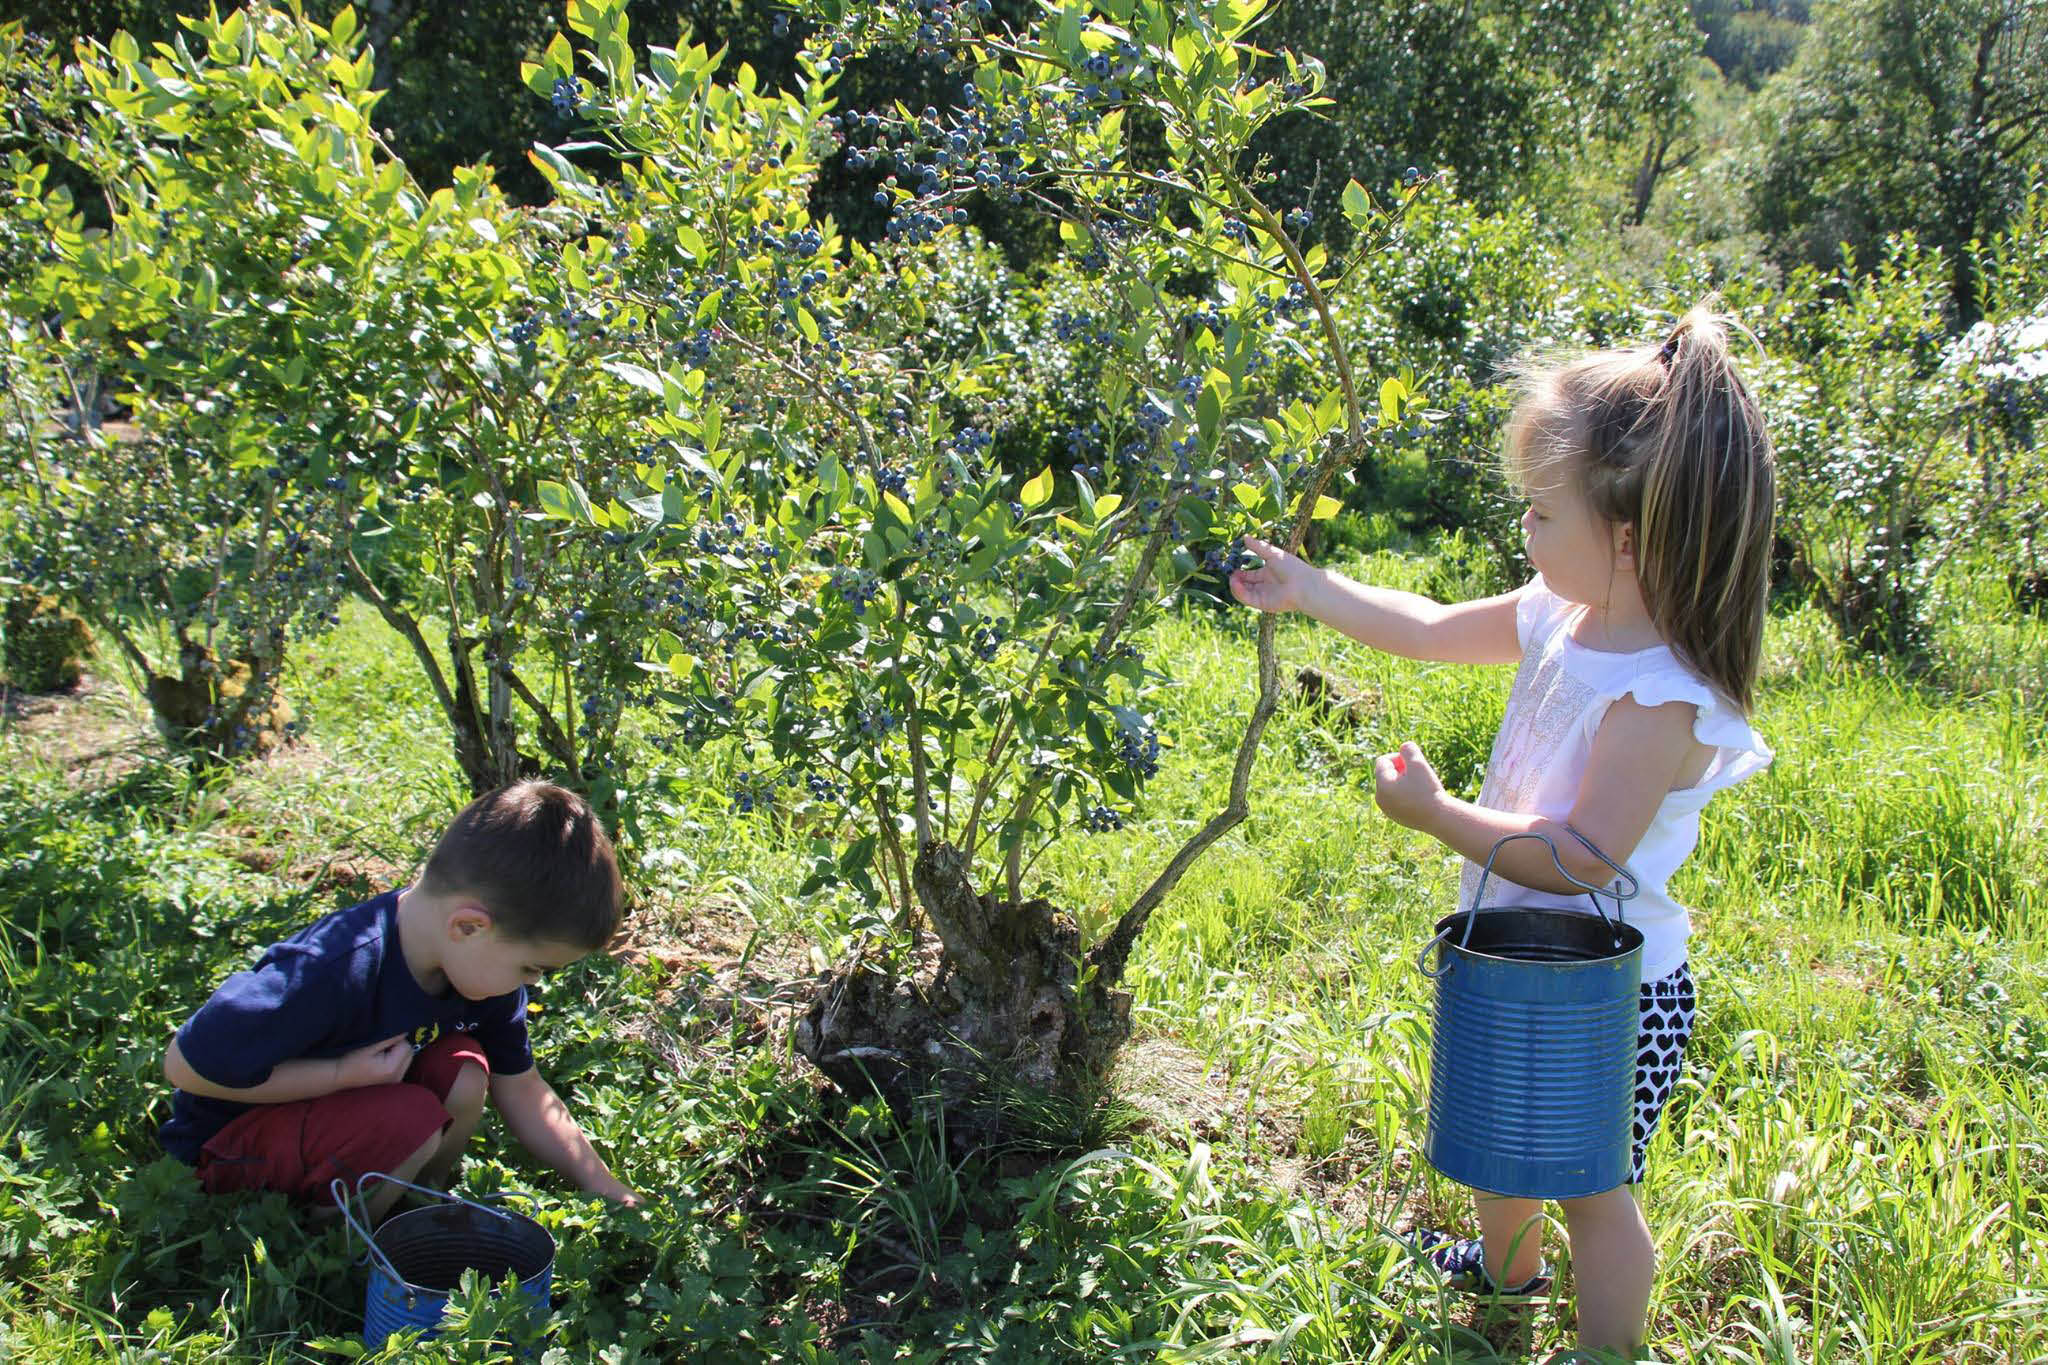 Picking blueberries at Mountainview Blueberry Farm in Snohomish, WA